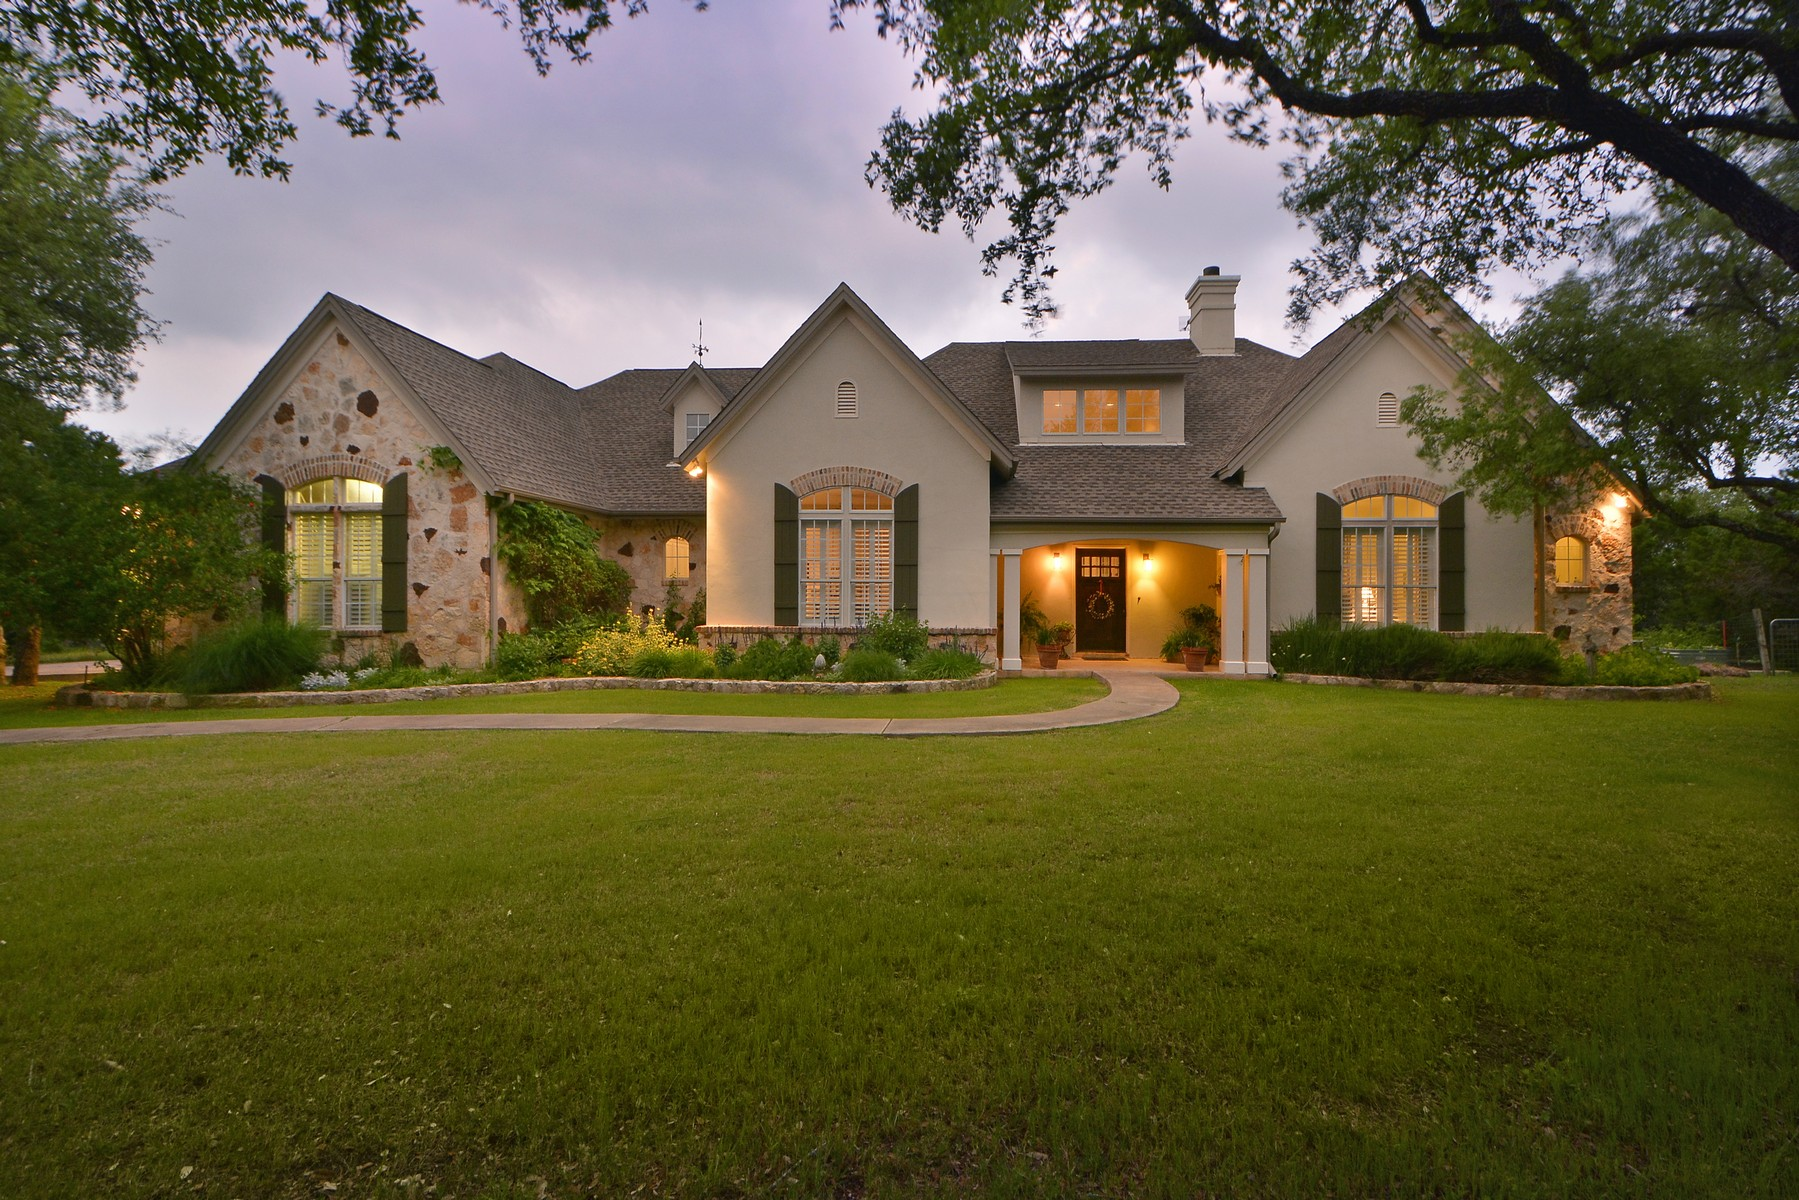 Single Family Home for Sale at Old World Style Home in Triple Creek Ranch 12220 Triple Creek Dr Dripping Springs, Texas 78620 United States